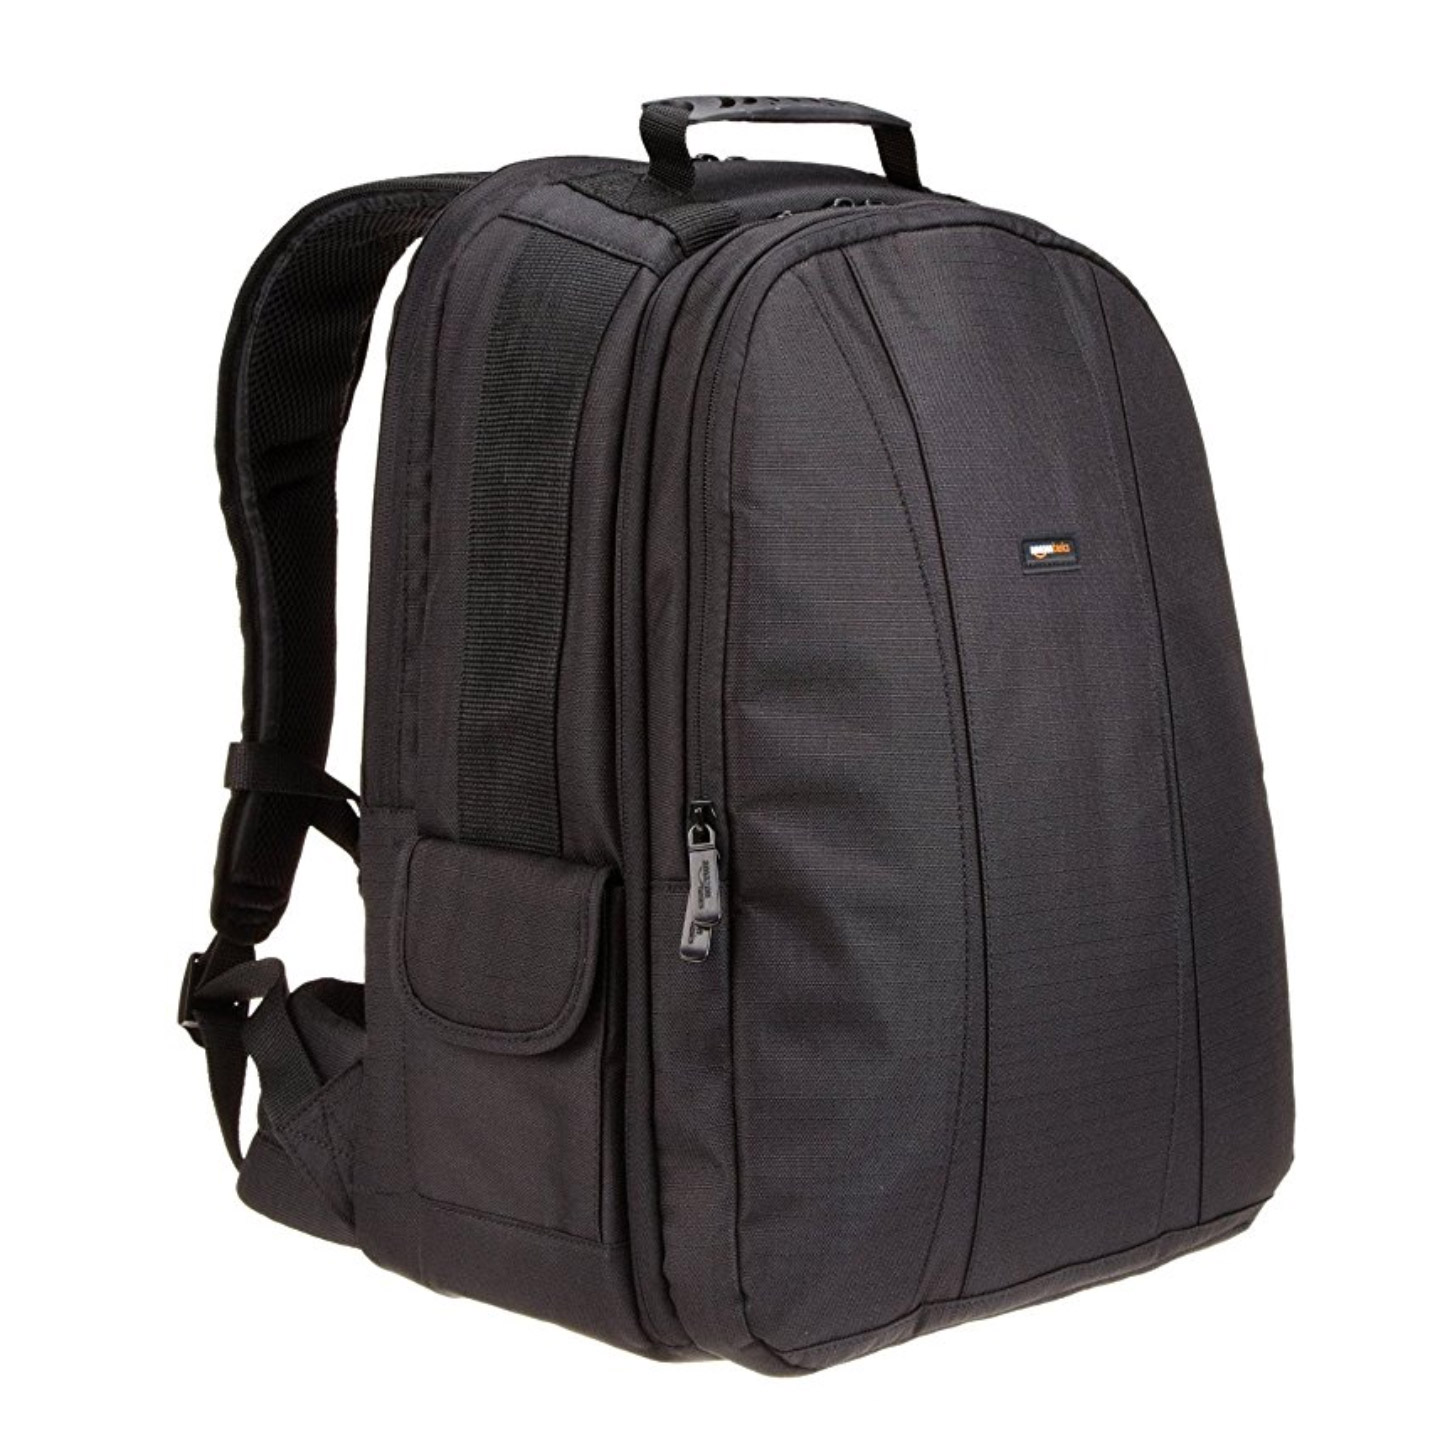 Amazon Basics Camera Backpack